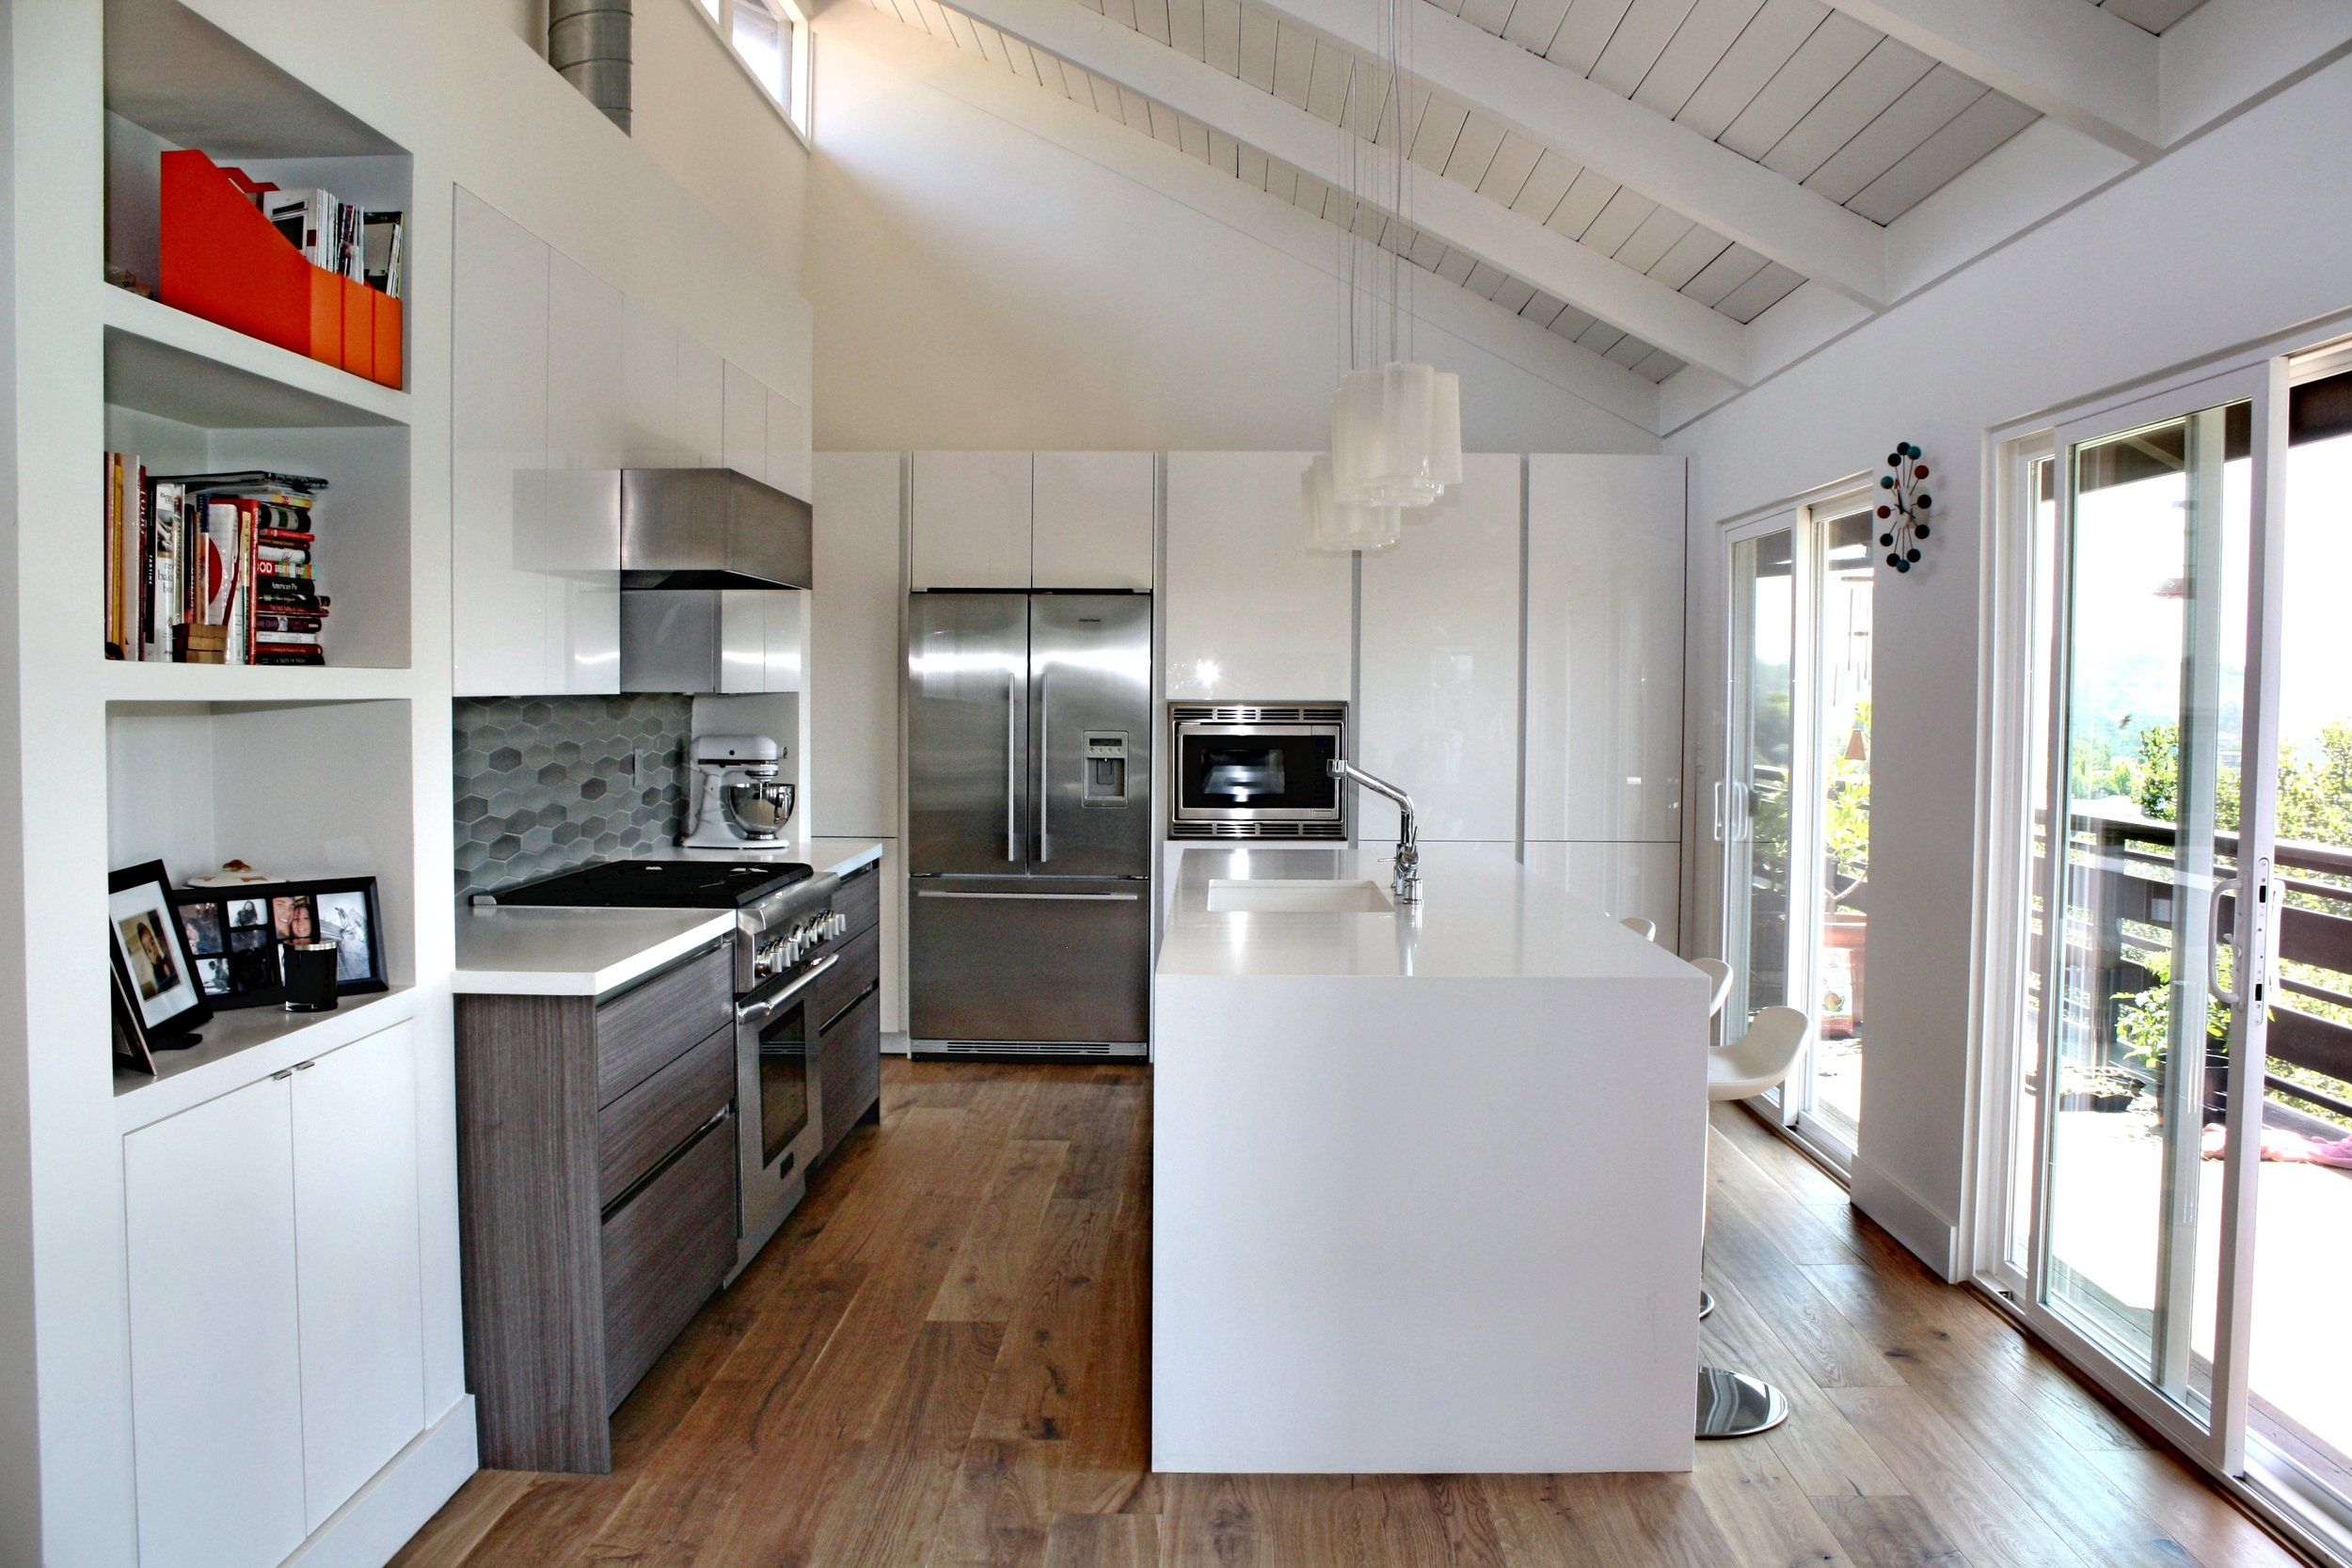 william-adams-design-interior-design-and-architecture-home-remodeling-san-francisco-california-mill-valley-mid-century-kitchen-design-white-grey-wood-flooring-2.jpg